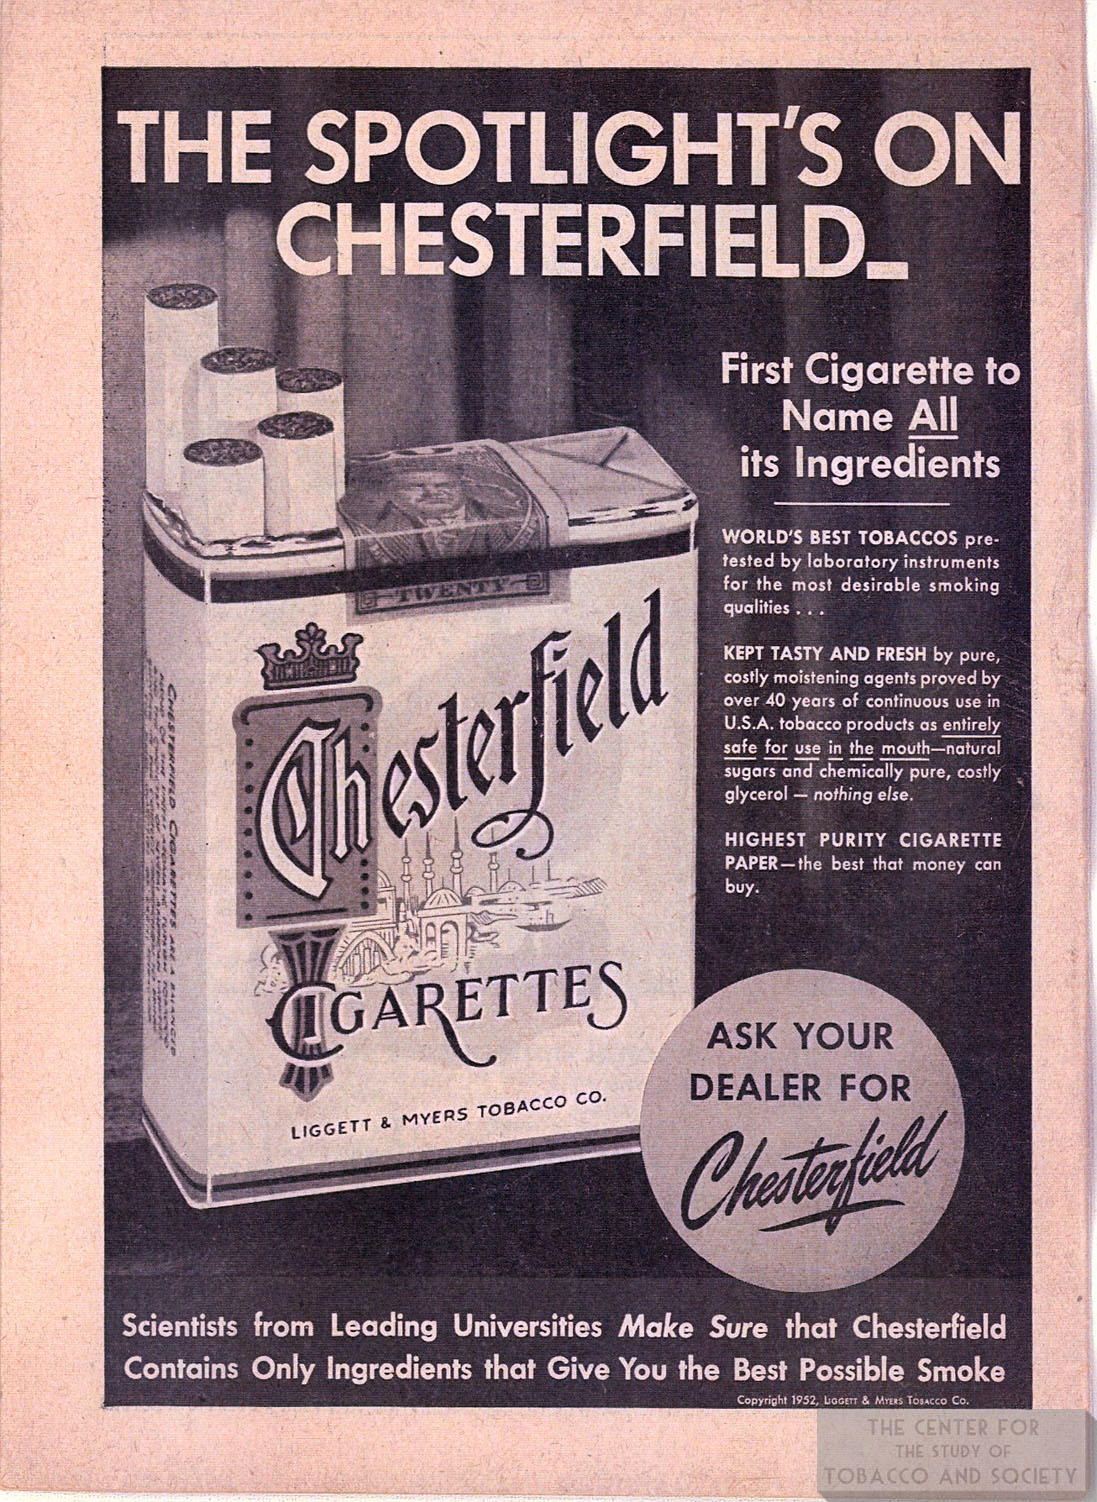 1952 Chesterfield Ad Spotlights On Chesterfield